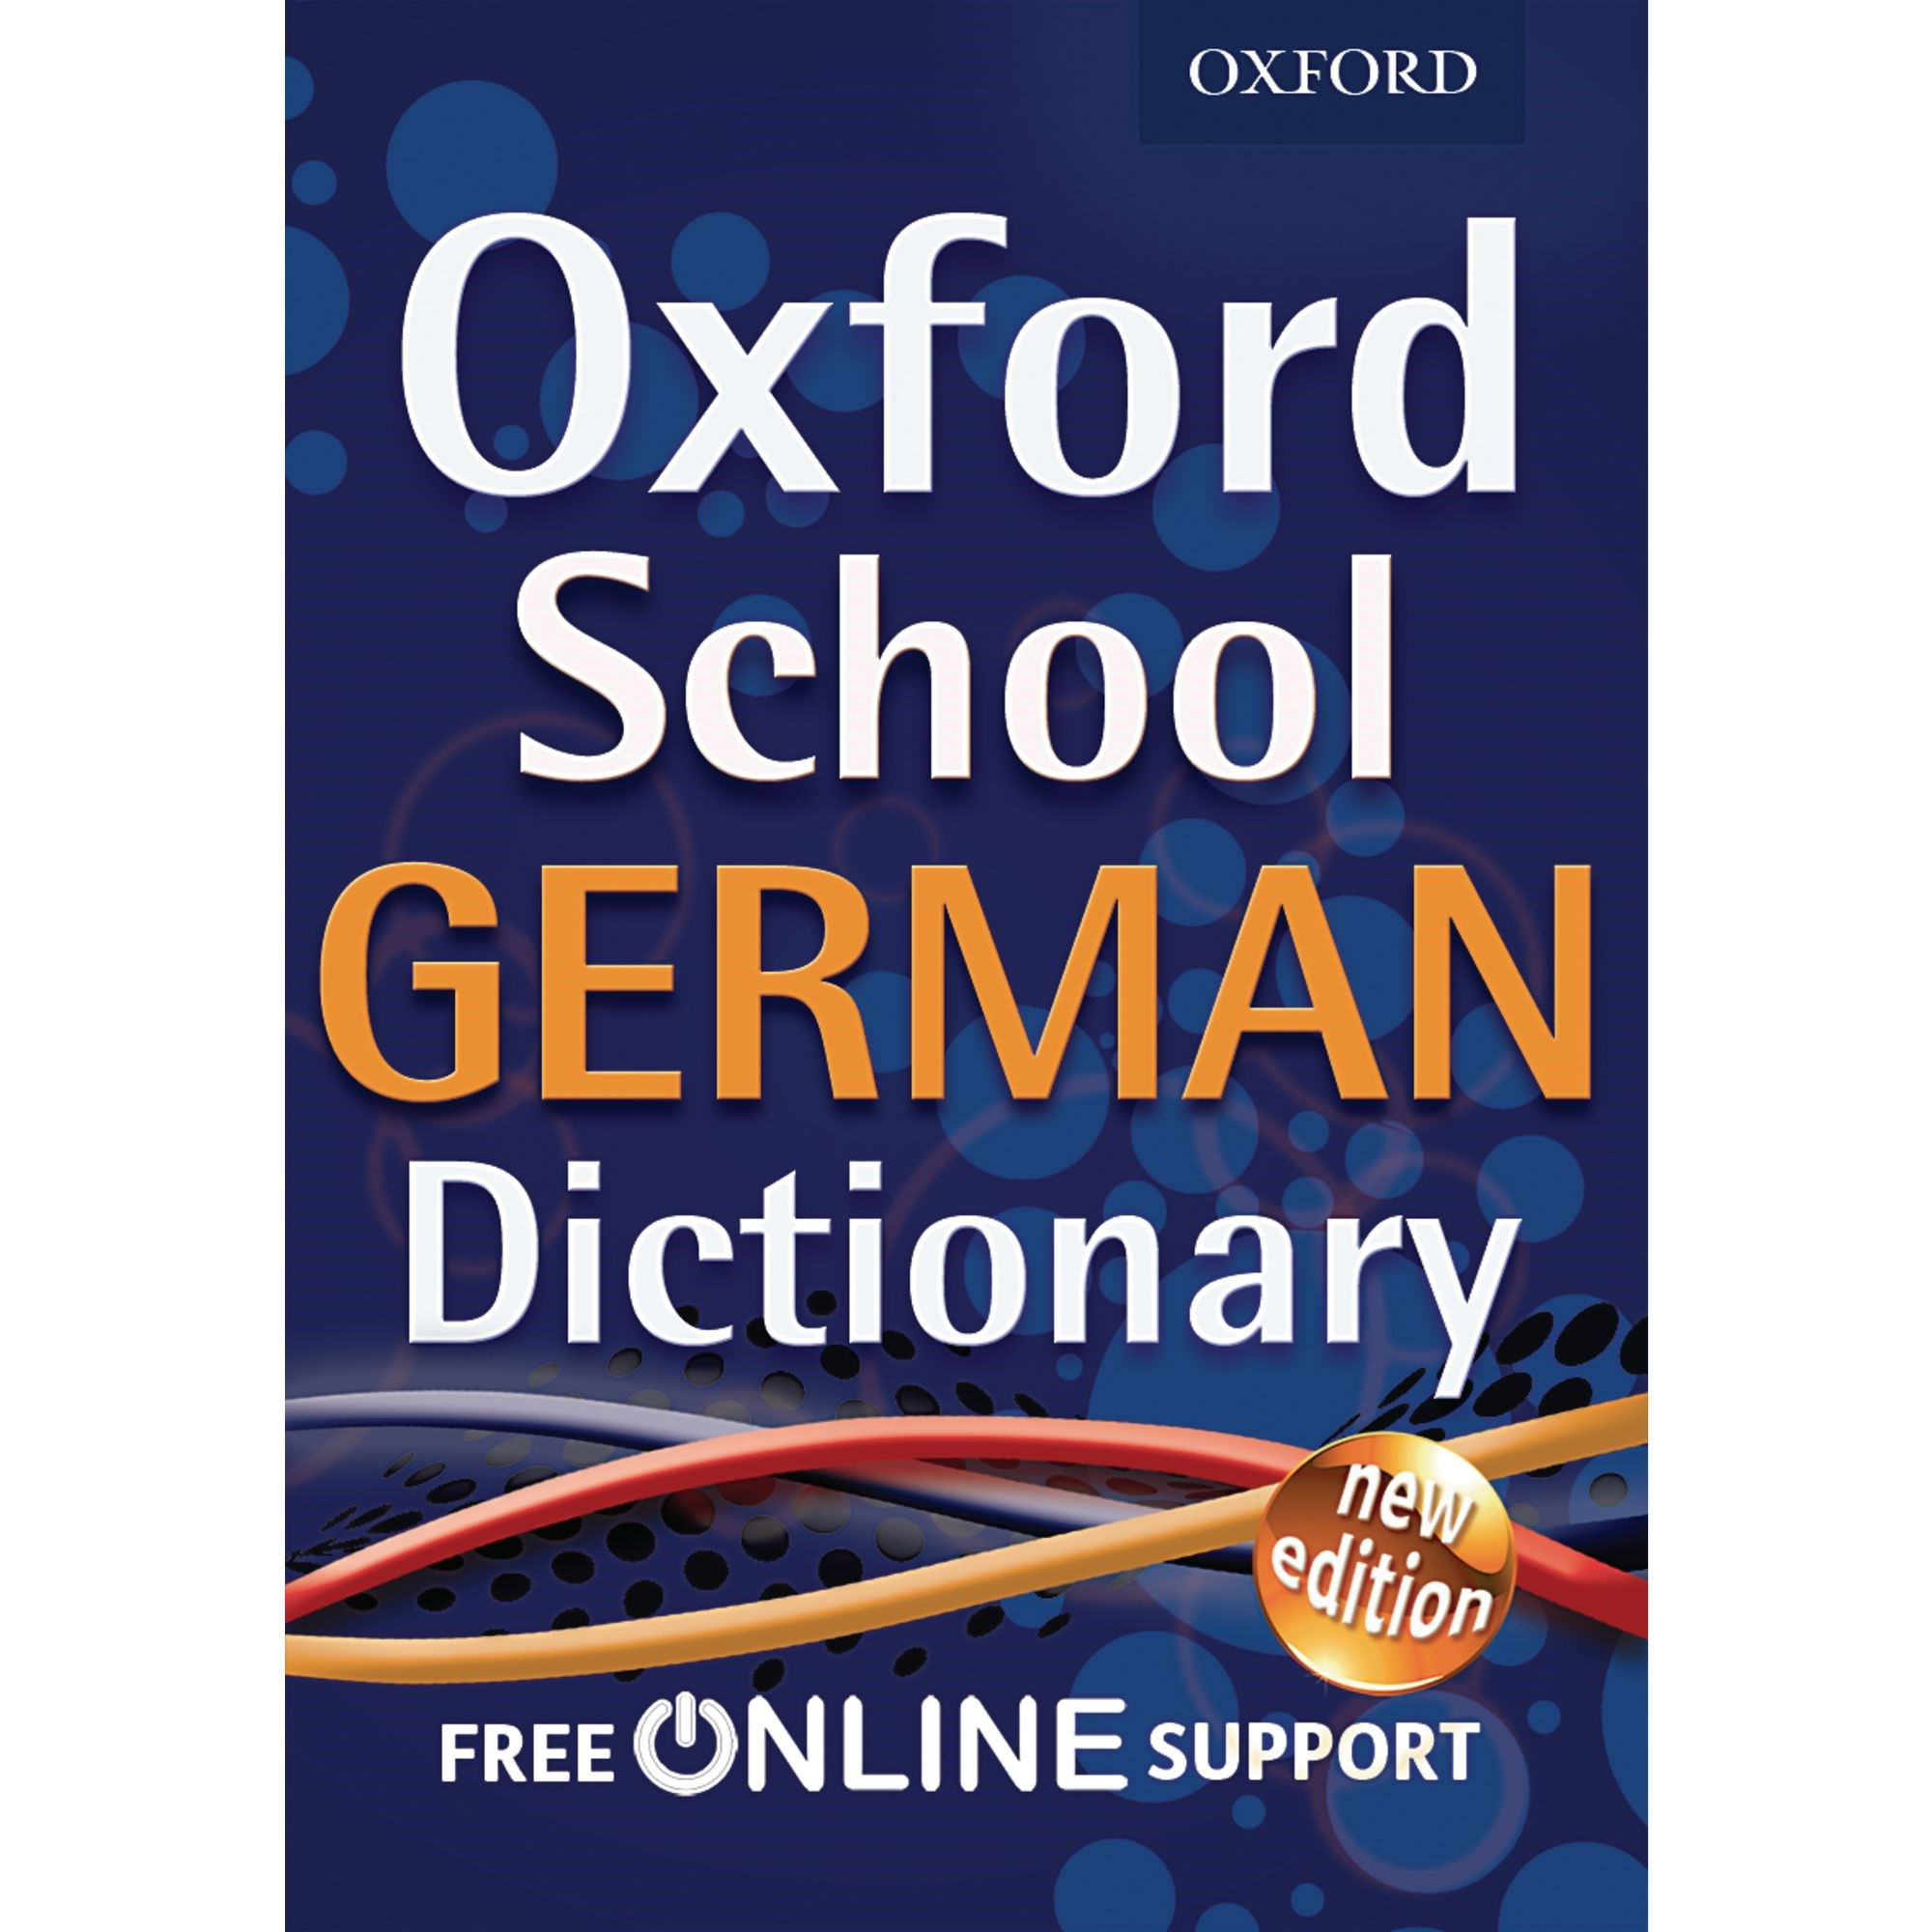 The Oxford School German Dictionary